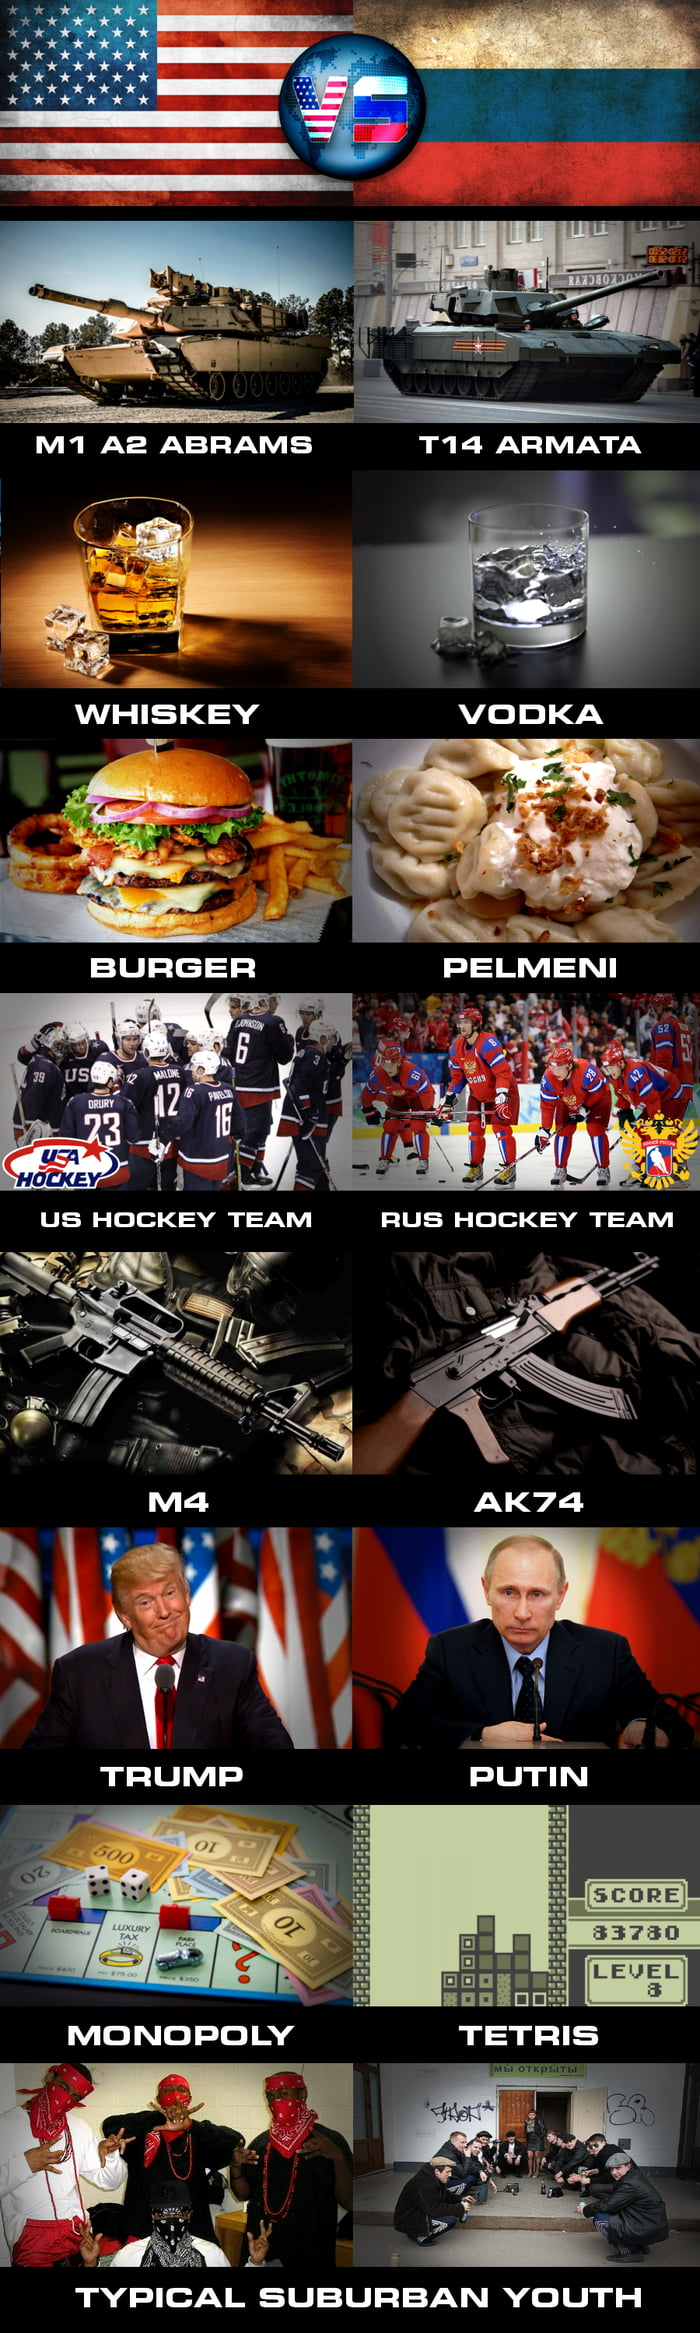 NEMESIS GAMES ROUND 2 // USA vs RUS (you decide - comment your result ...like 3:5 RUS / 6:2 USA ...)